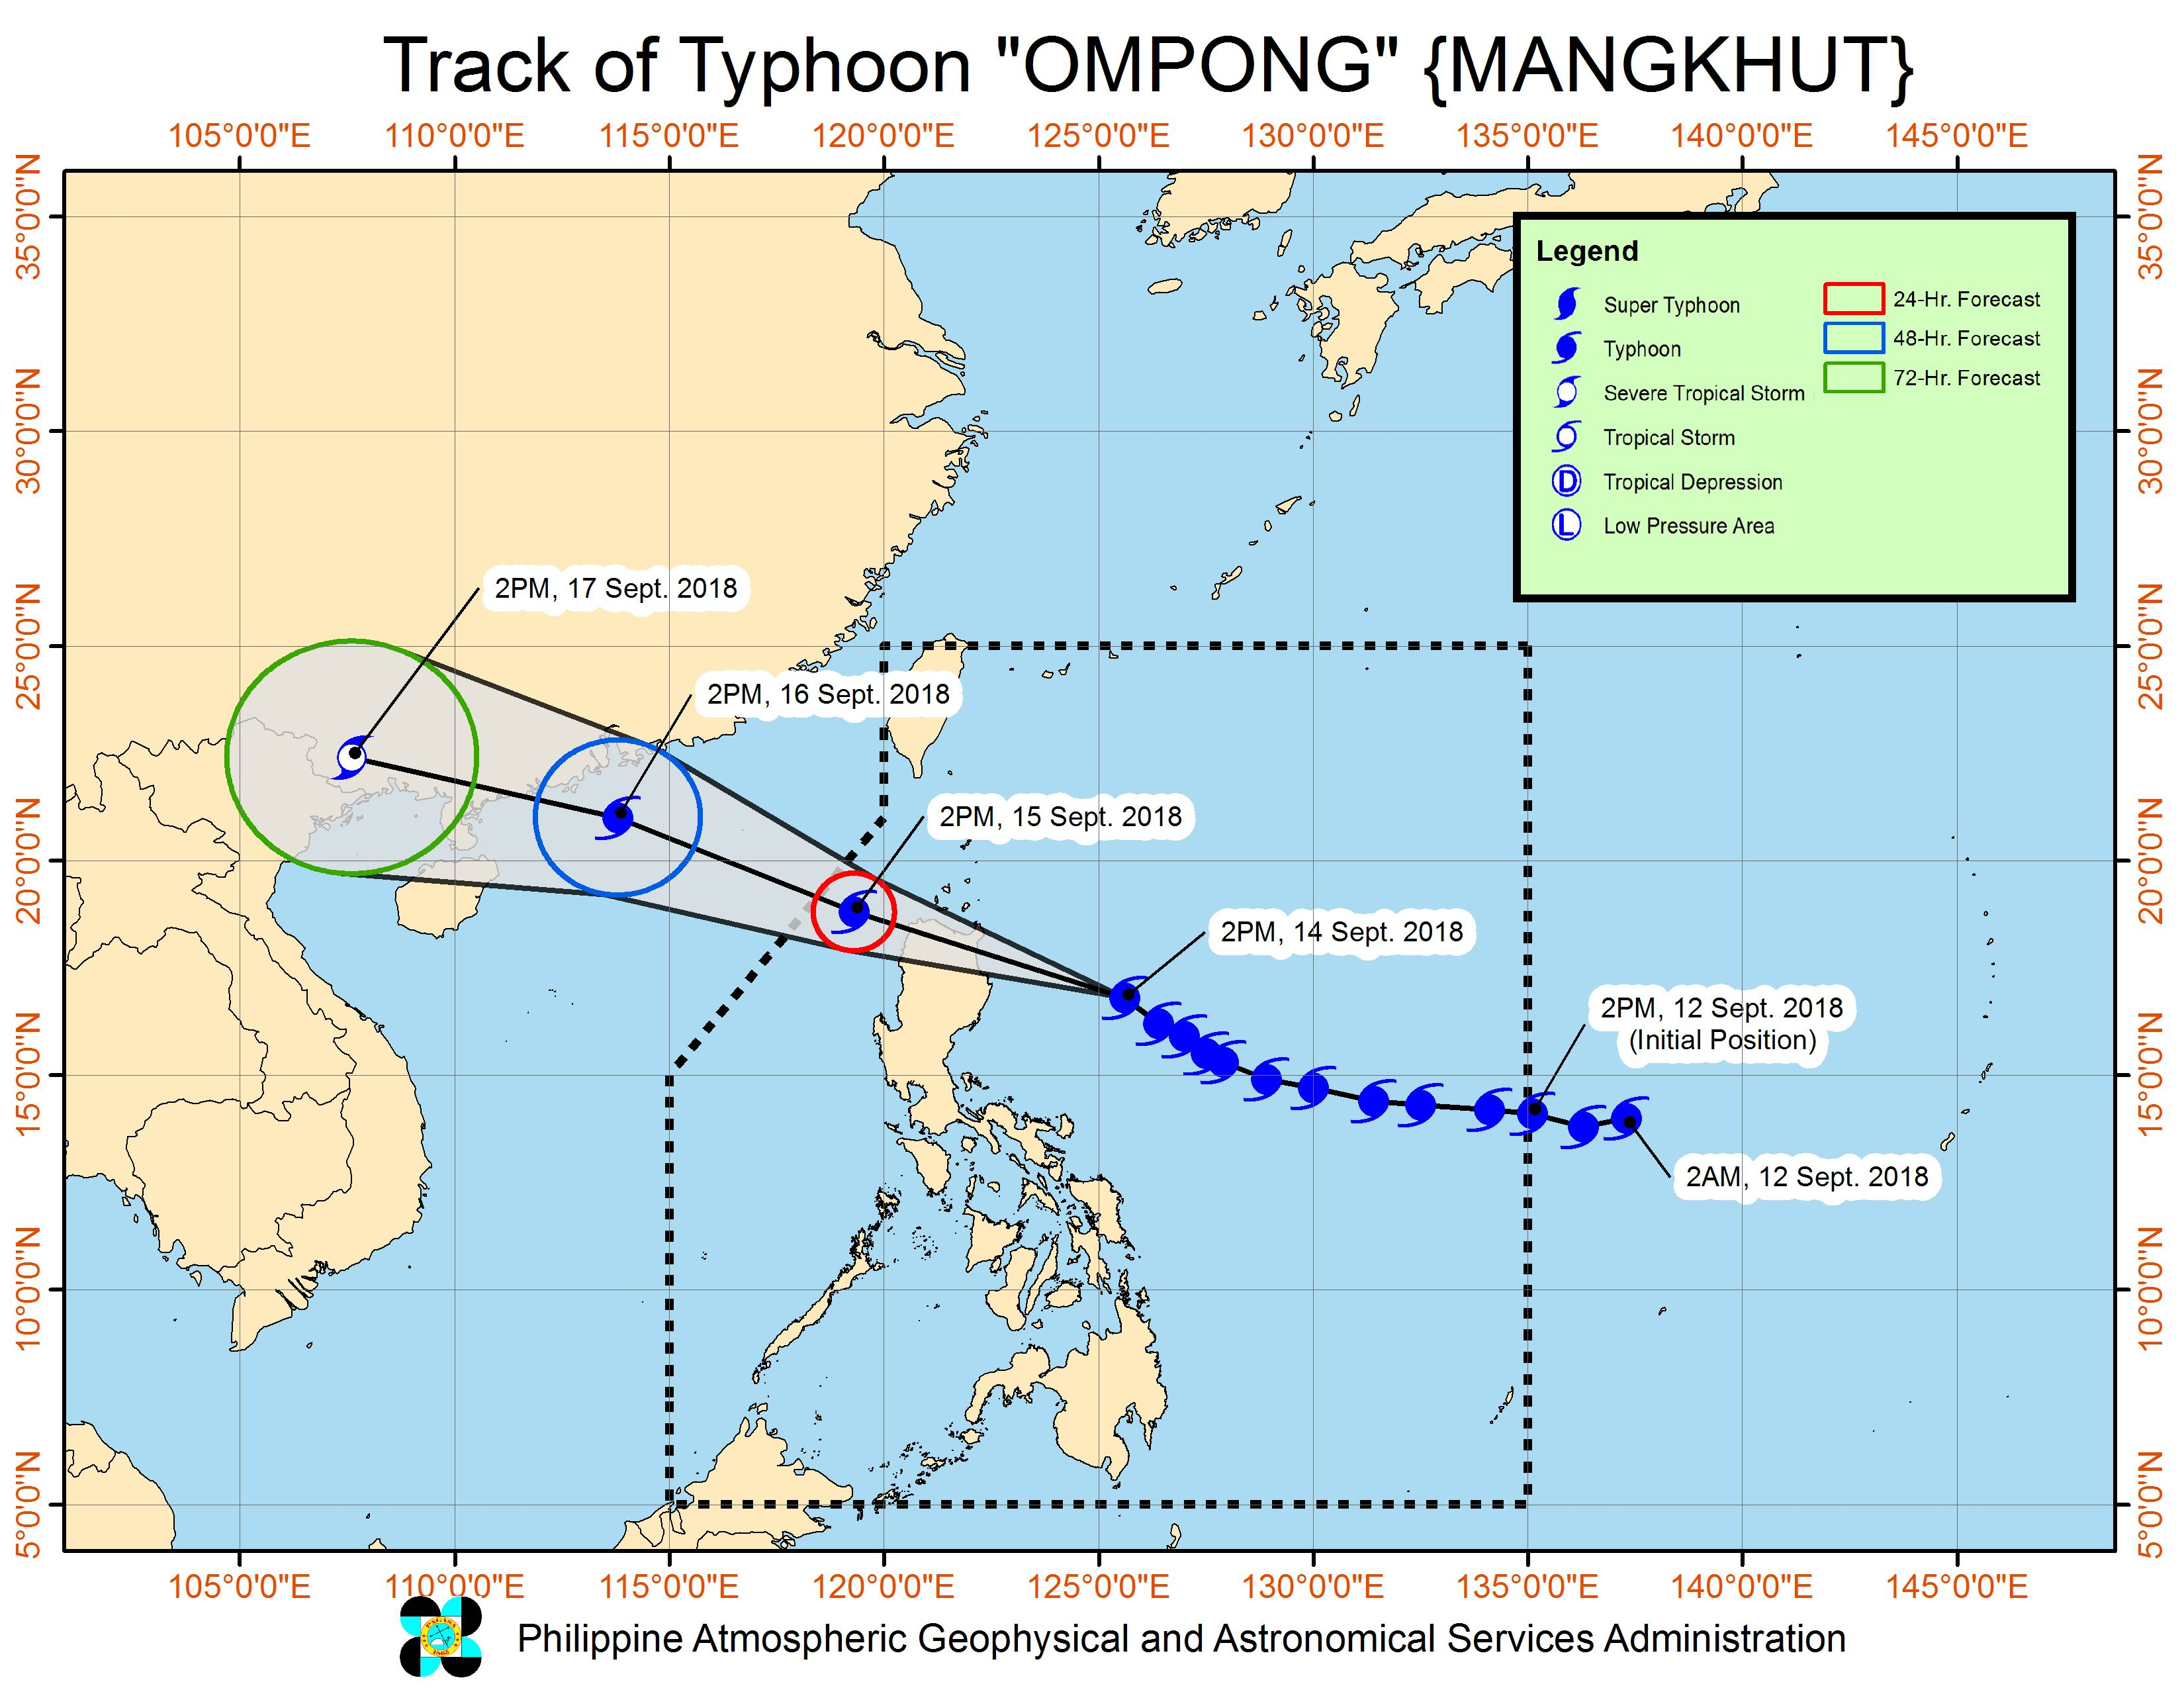 Forecast track of Typhoon Ompong (Mangkhut) as of September 14, 2018, 5 pm. Image from PAGASA